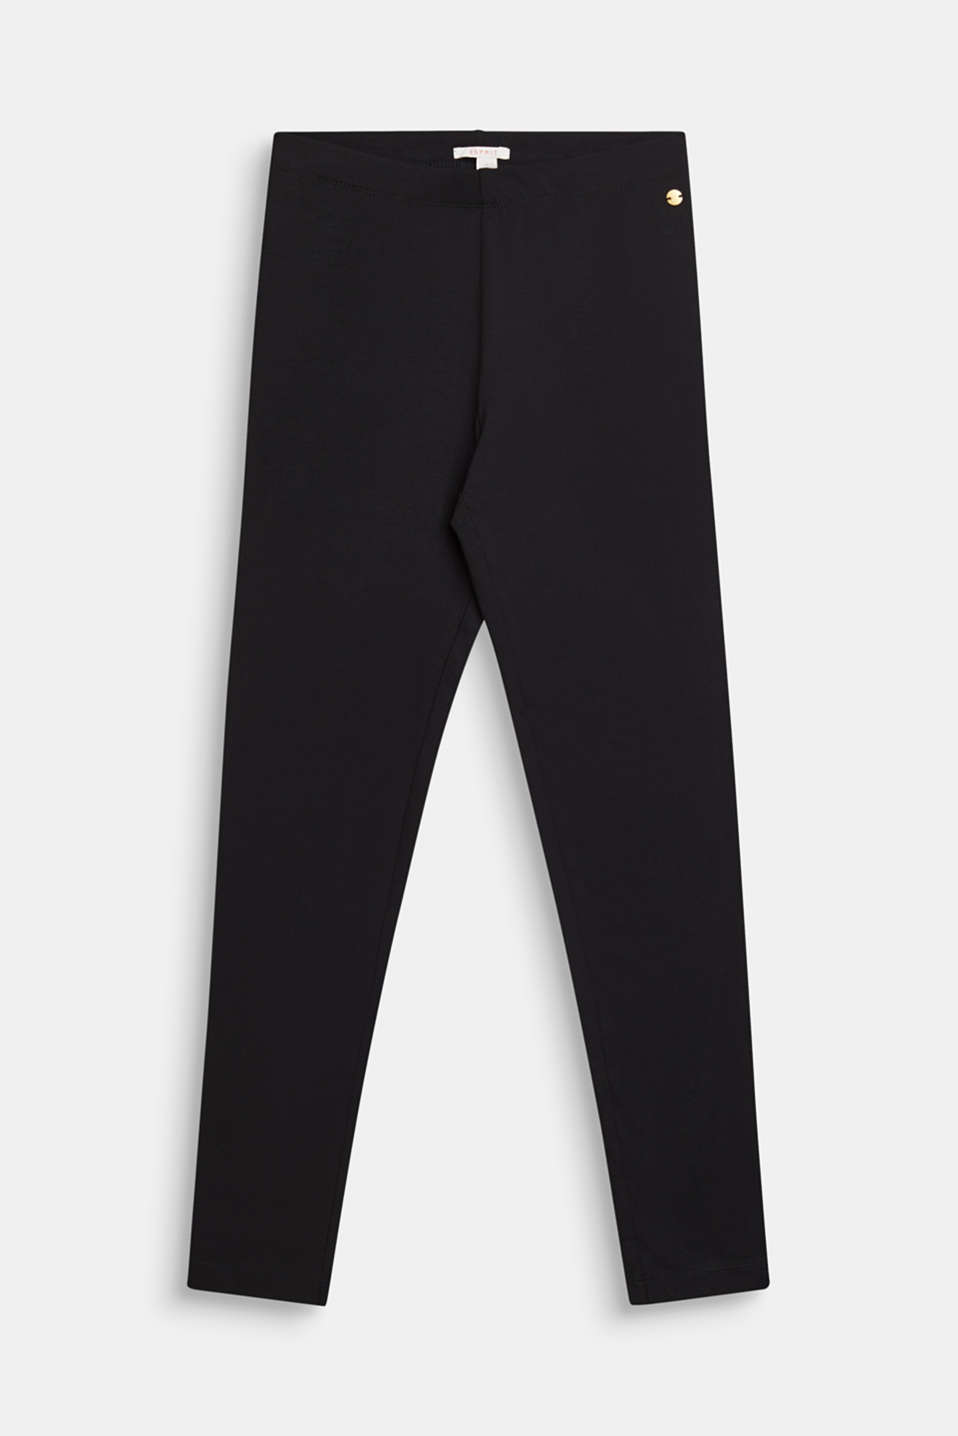 Esprit - Basic-leggings i bomuldsstretch